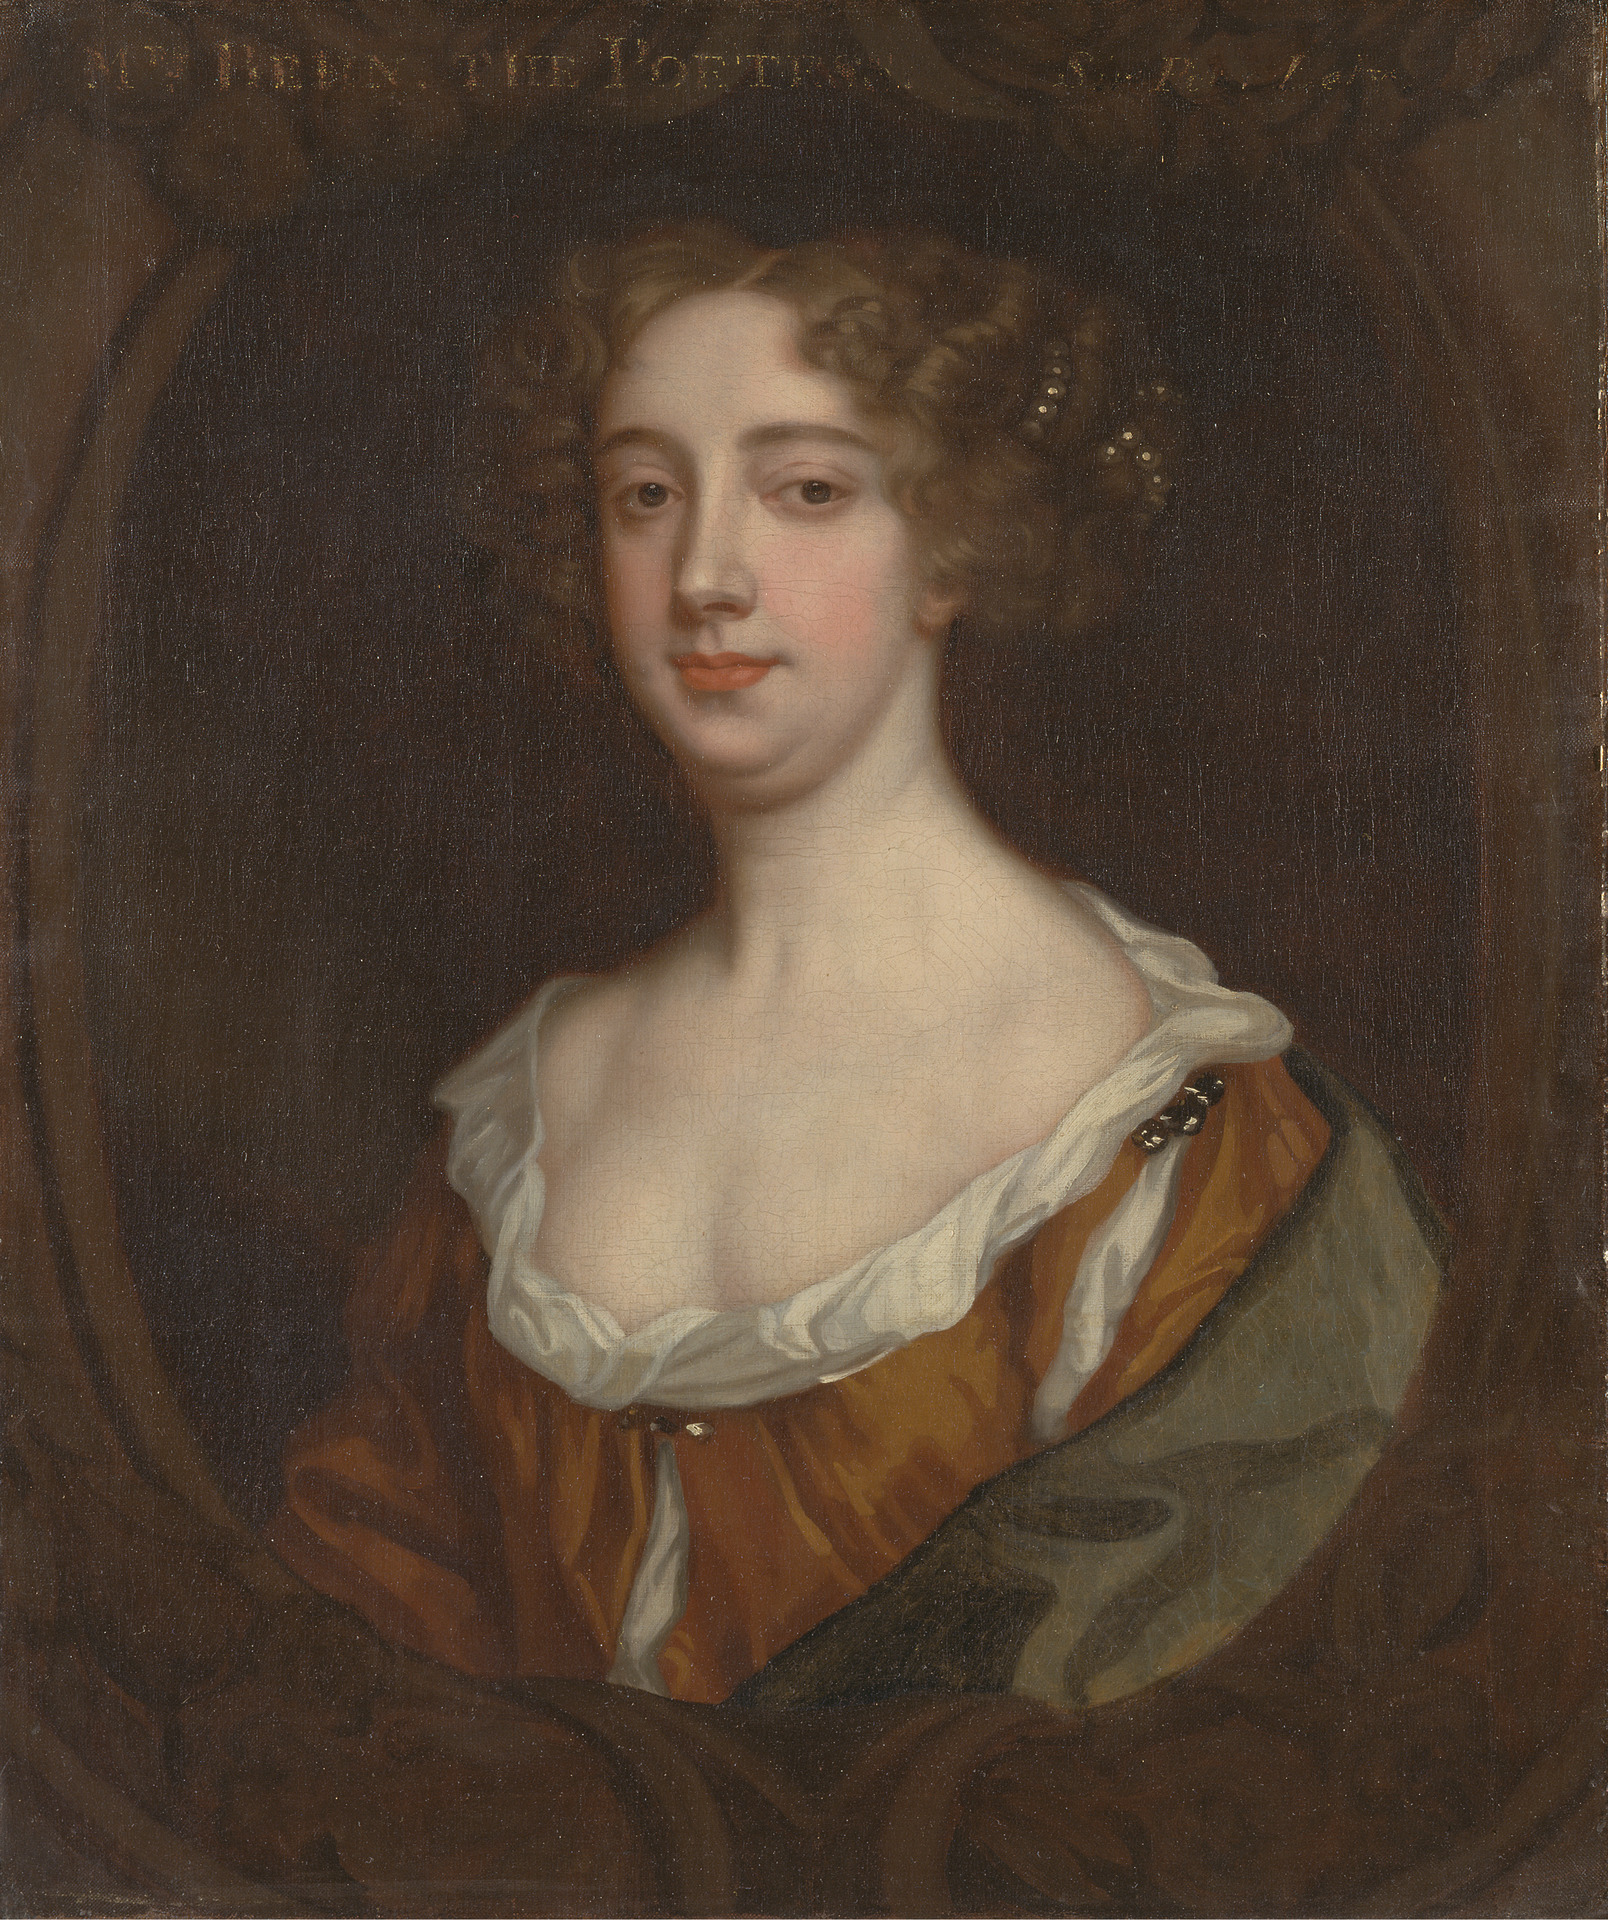 Aphra Behn, as painted by Peter Lely, around 1670 [Wikimedia Commons]